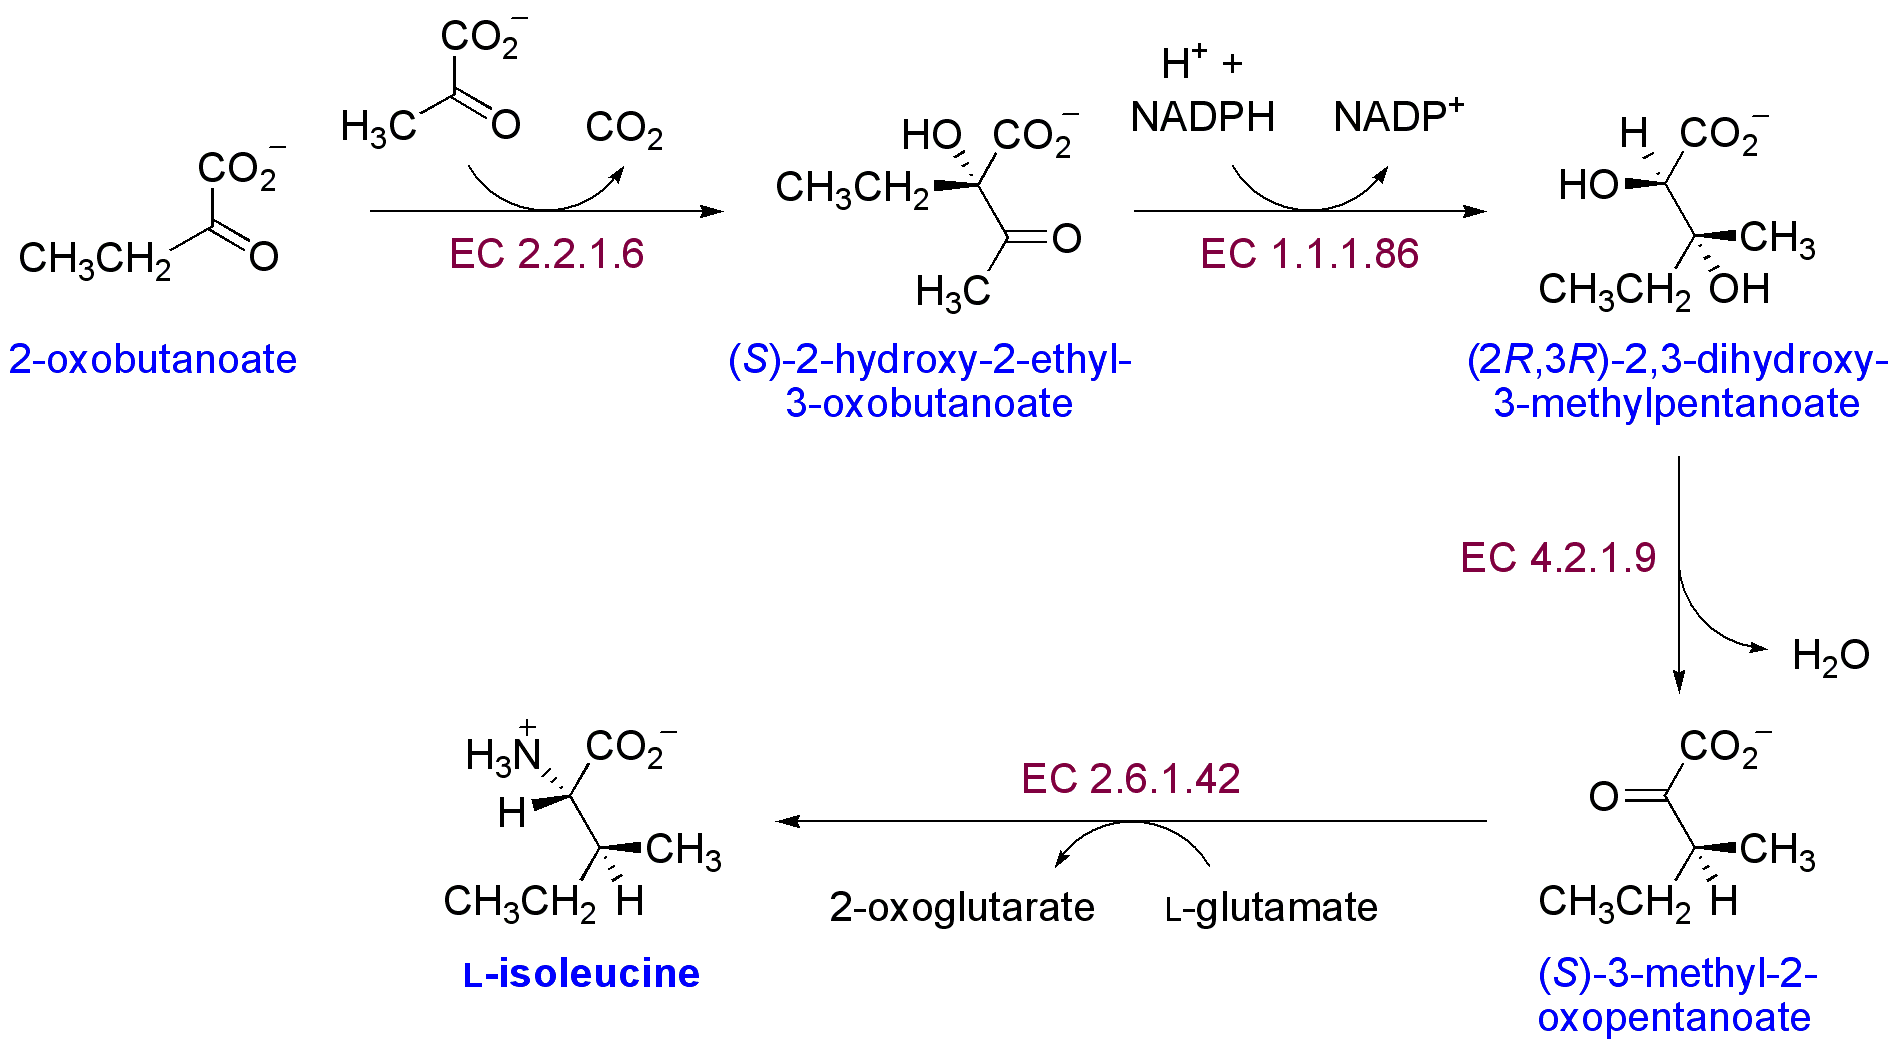 https://upload.wikimedia.org/wikipedia/commons/4/4e/Isoleucine_biosynthesis.png